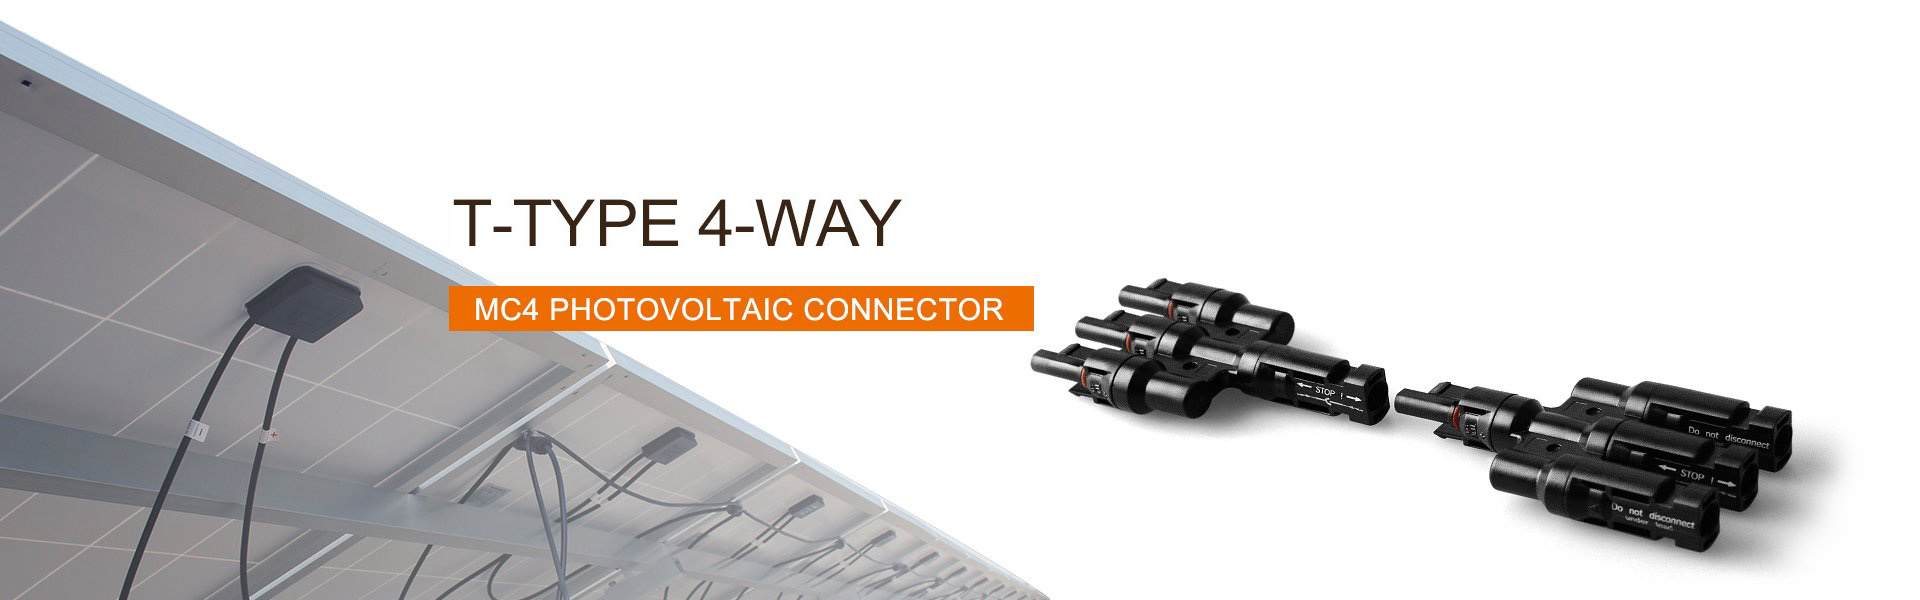 MC4 PV Connector 4-Way - LvchenSolar, One-Stop PV Products and Service